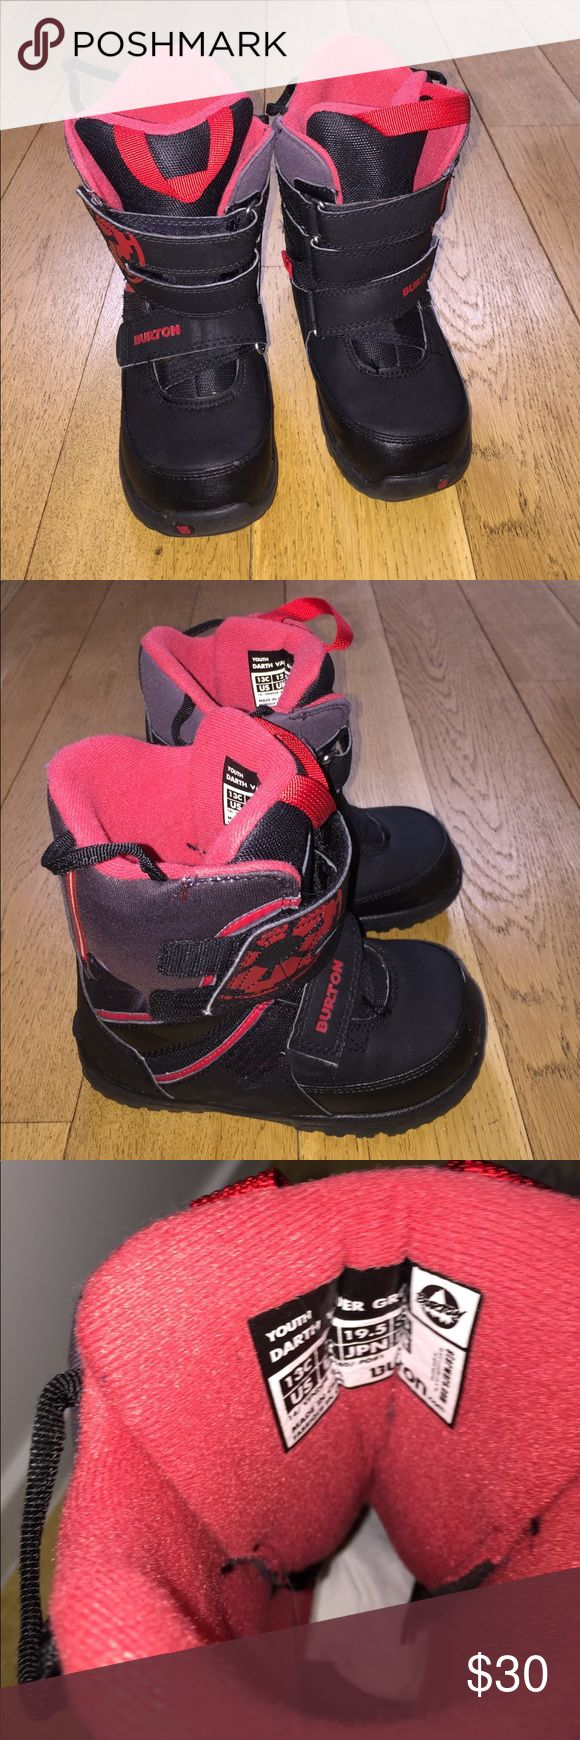 Burton Darth Vader Star Wars Snow Boots Size 3 These black and red Burton boots are like new! Burton Shoes Rain & Snow Boots